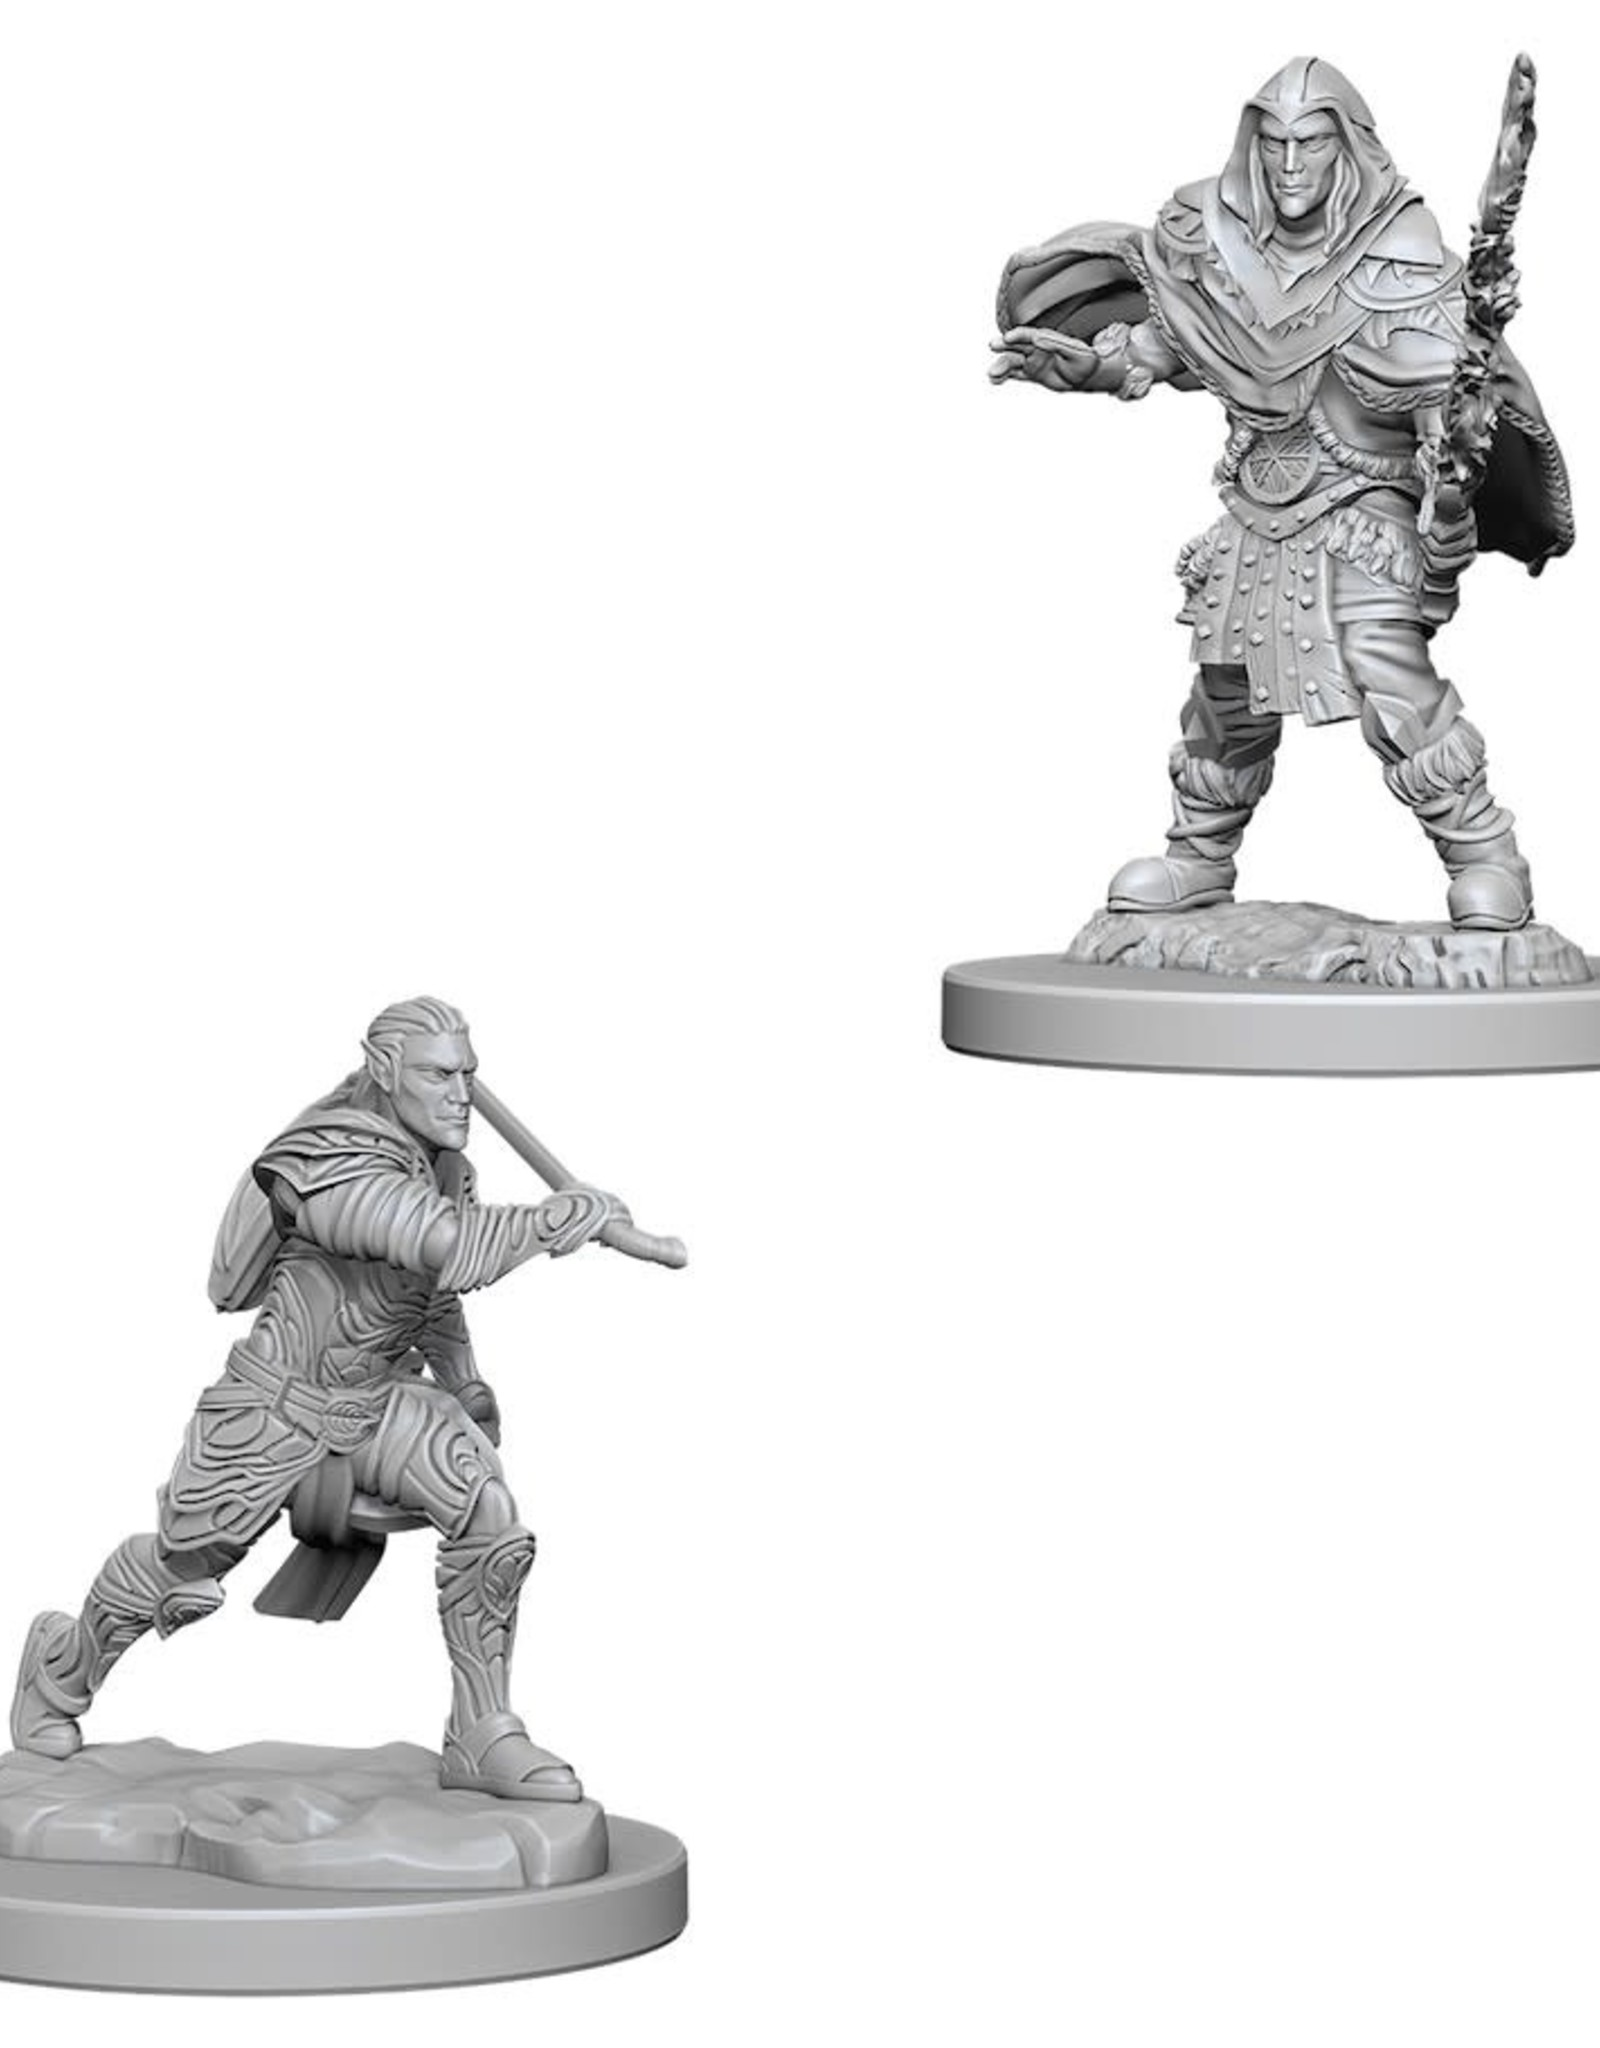 WizKids Dungeons & Dragons Nolzur's Marvelous Miniatures: Male Elf Fighter